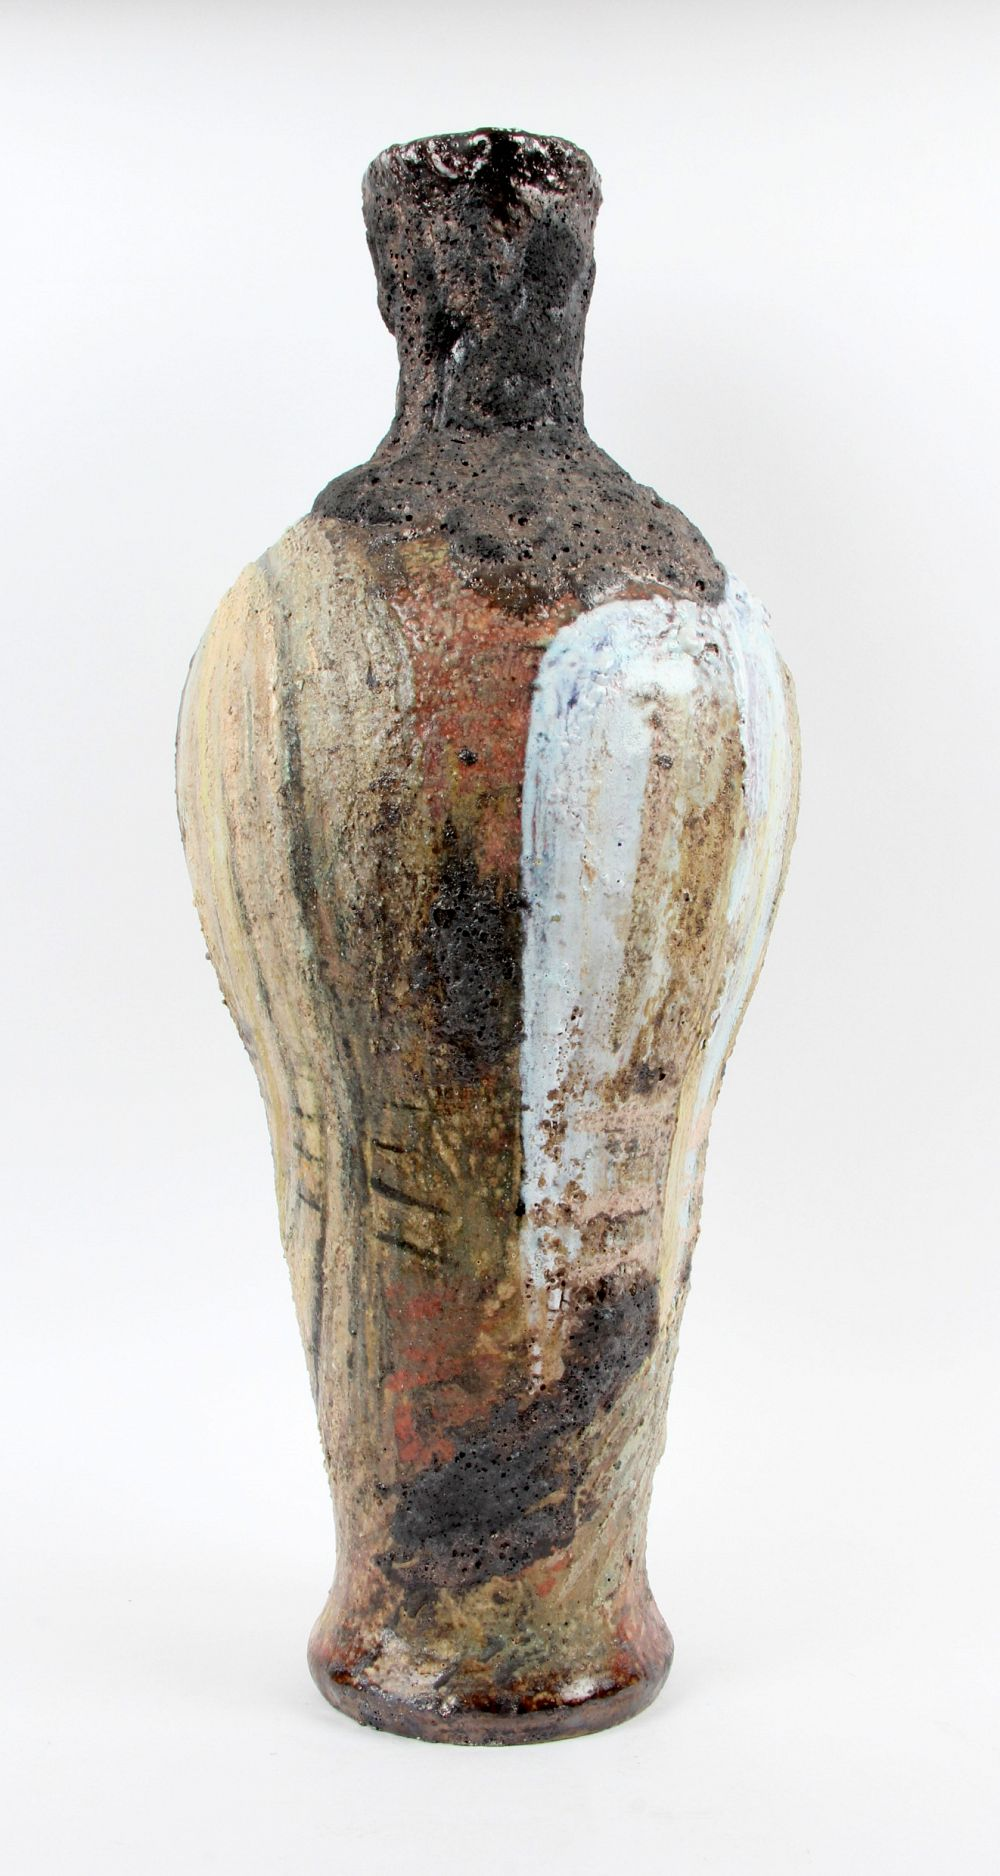 James miles robert j washington 1913 97 large studio pottery this is a fantastic and very large studio pottery vase by robert j washington it has superb textured abstract decoration and glazes from top to bottom reviewsmspy